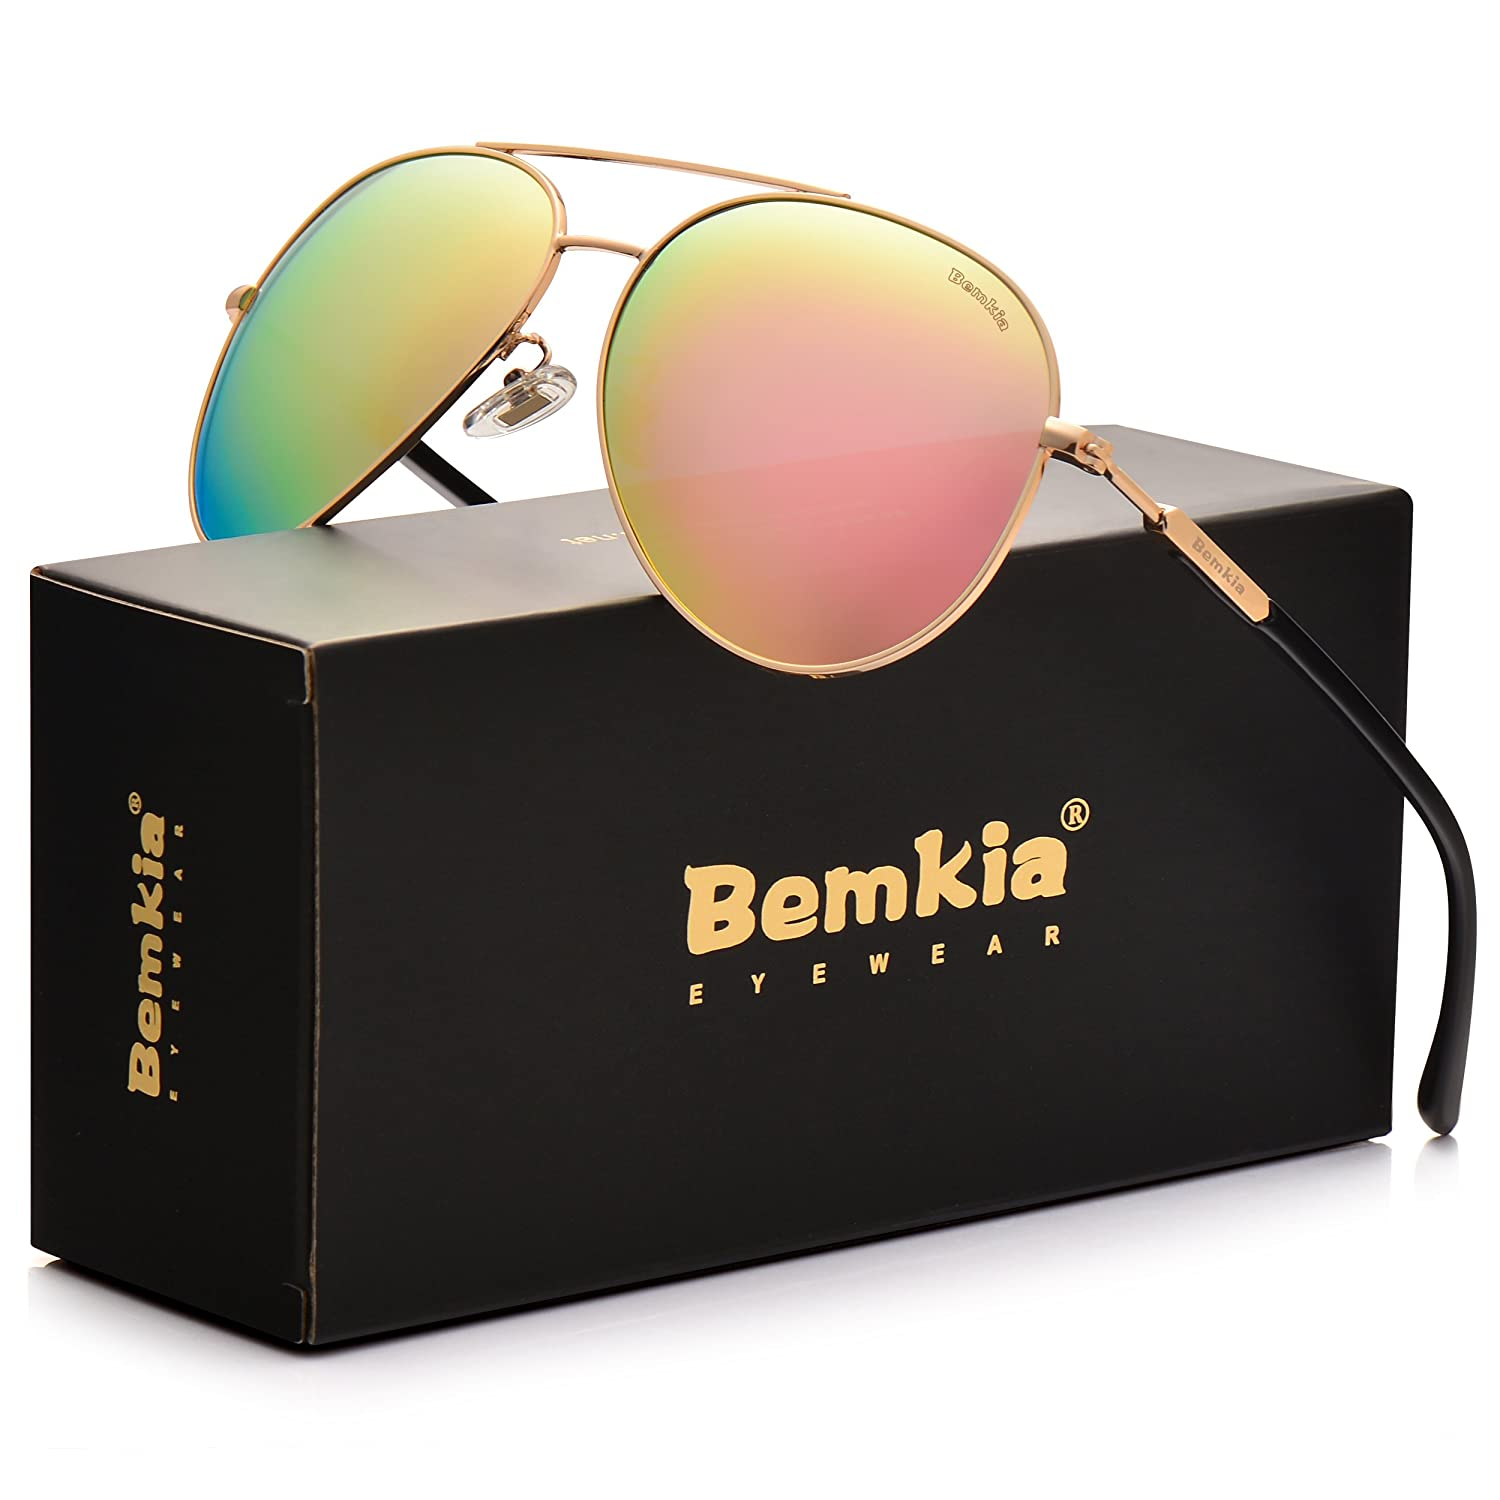 Bemkia Aviator Polarized Sunglasses Men Women 60mm Len Shades Metal Frame UV400